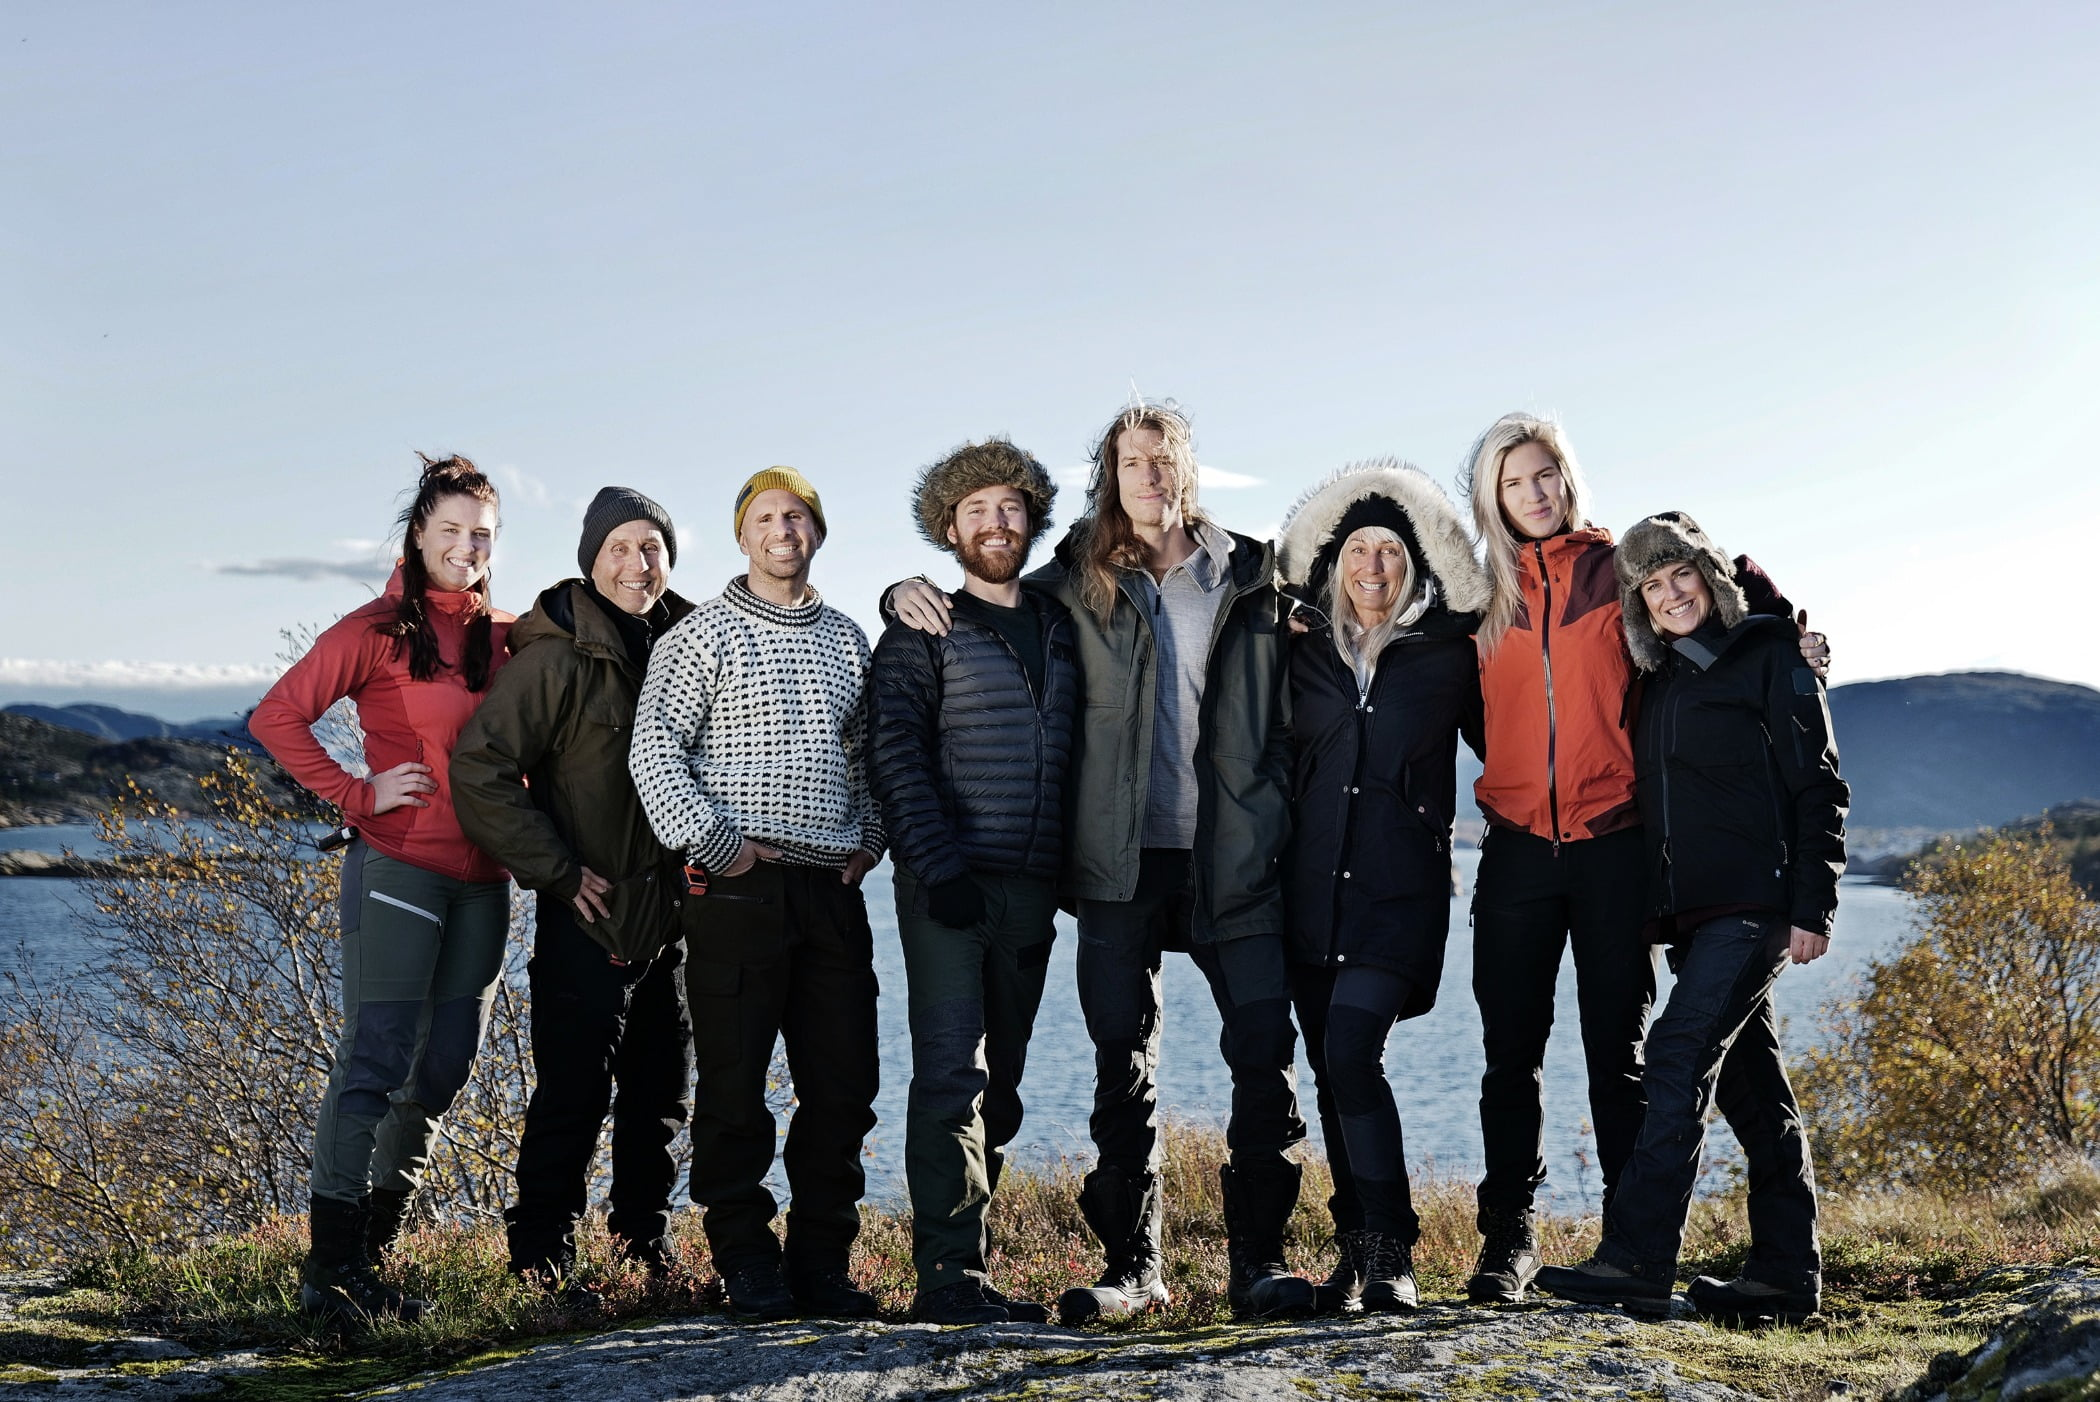 People in nature, Natural landscape, Outdoor recreation, Sky, Smile, Ecoregion, Mountain, Happy, Highland, Travel